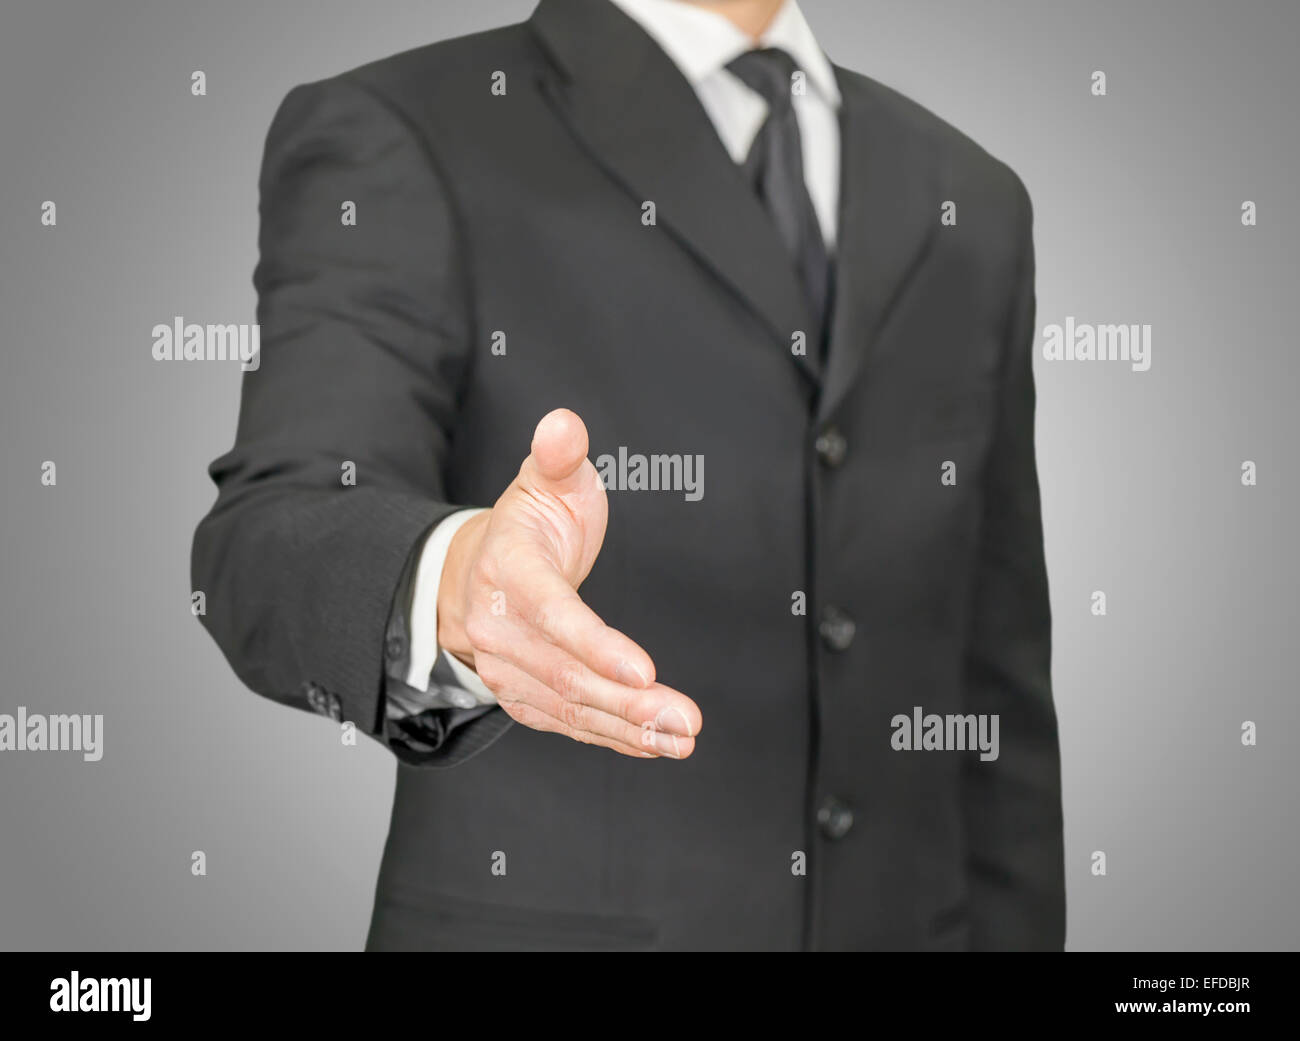 Businessman giving a handshake - Stock Image